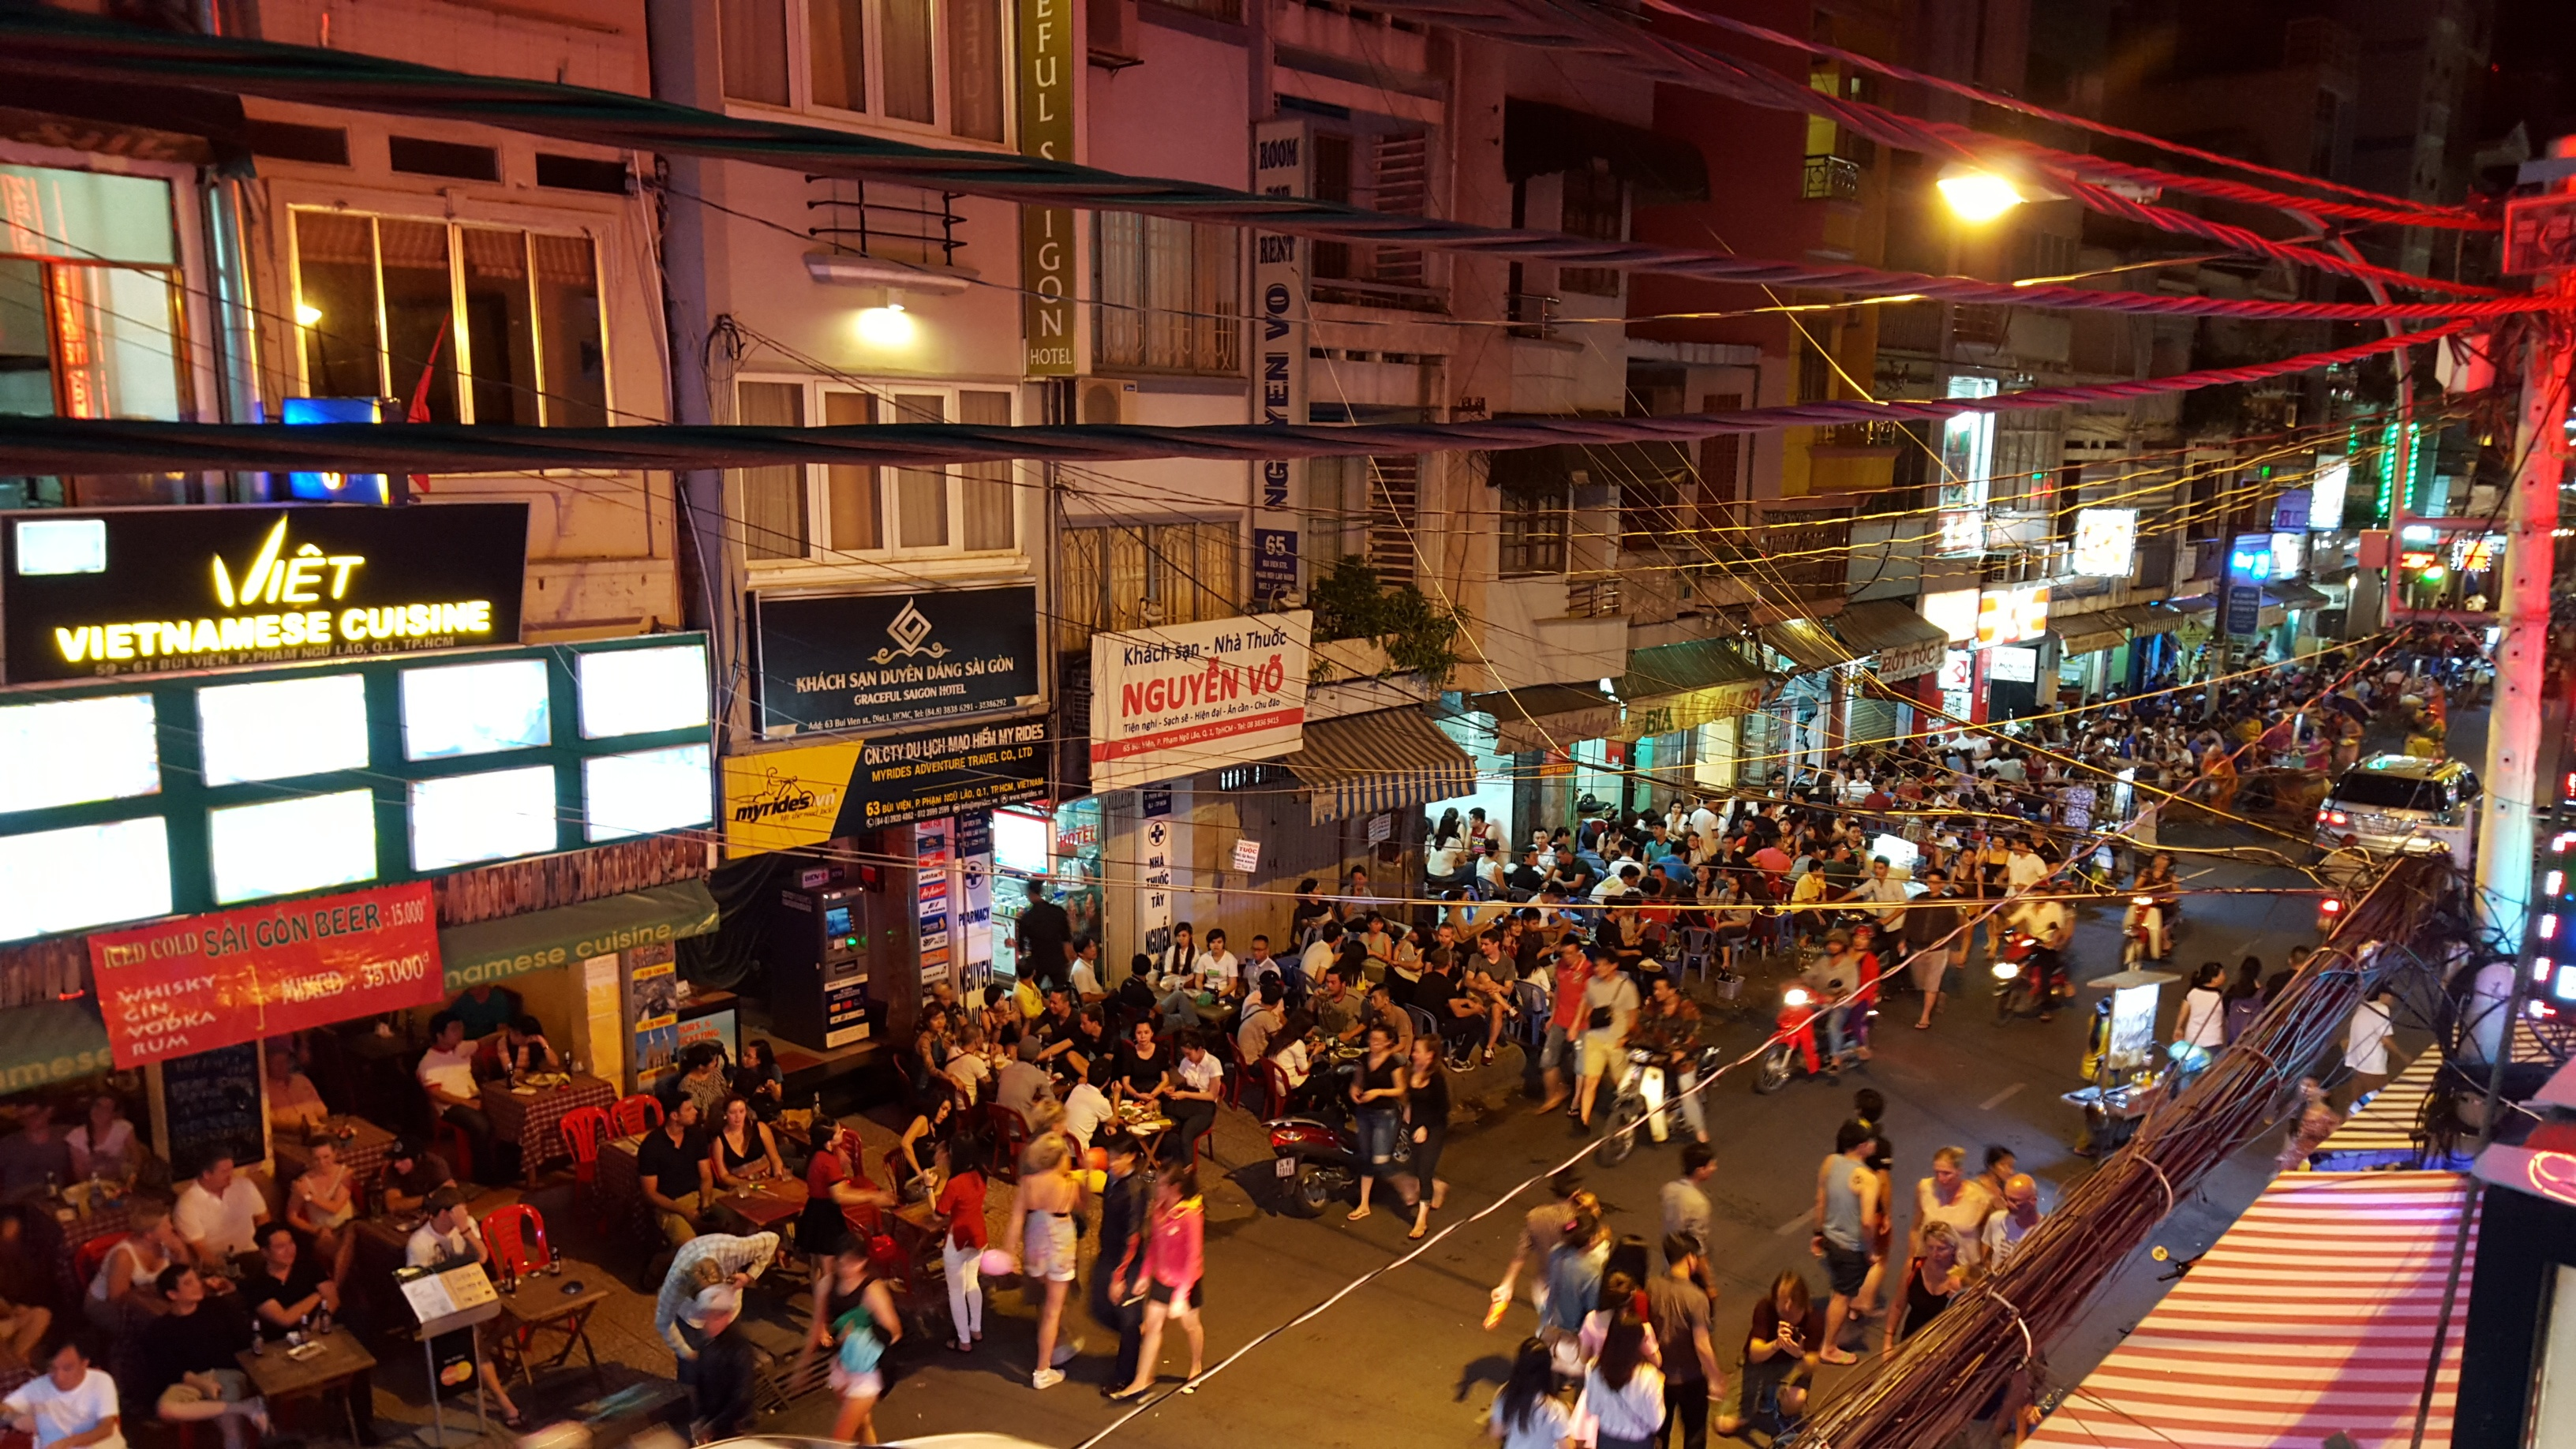 Get TEFL certified and teach English in Ho Chi Minh City